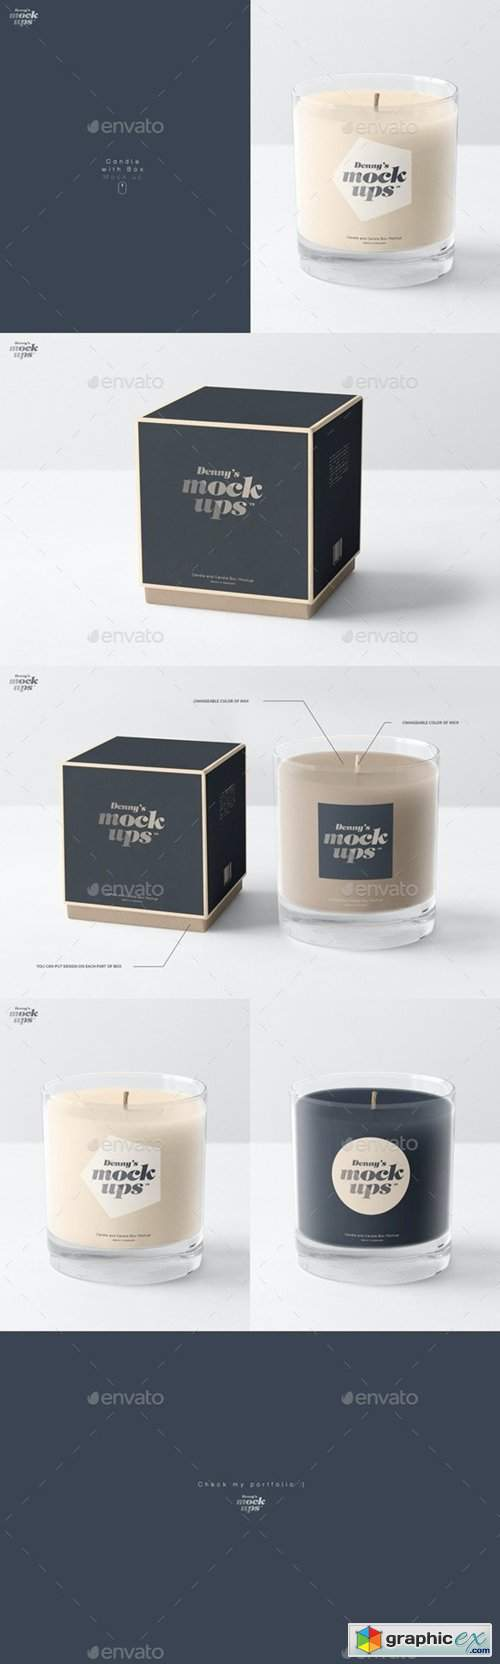 Candle in Gift Box Mockup